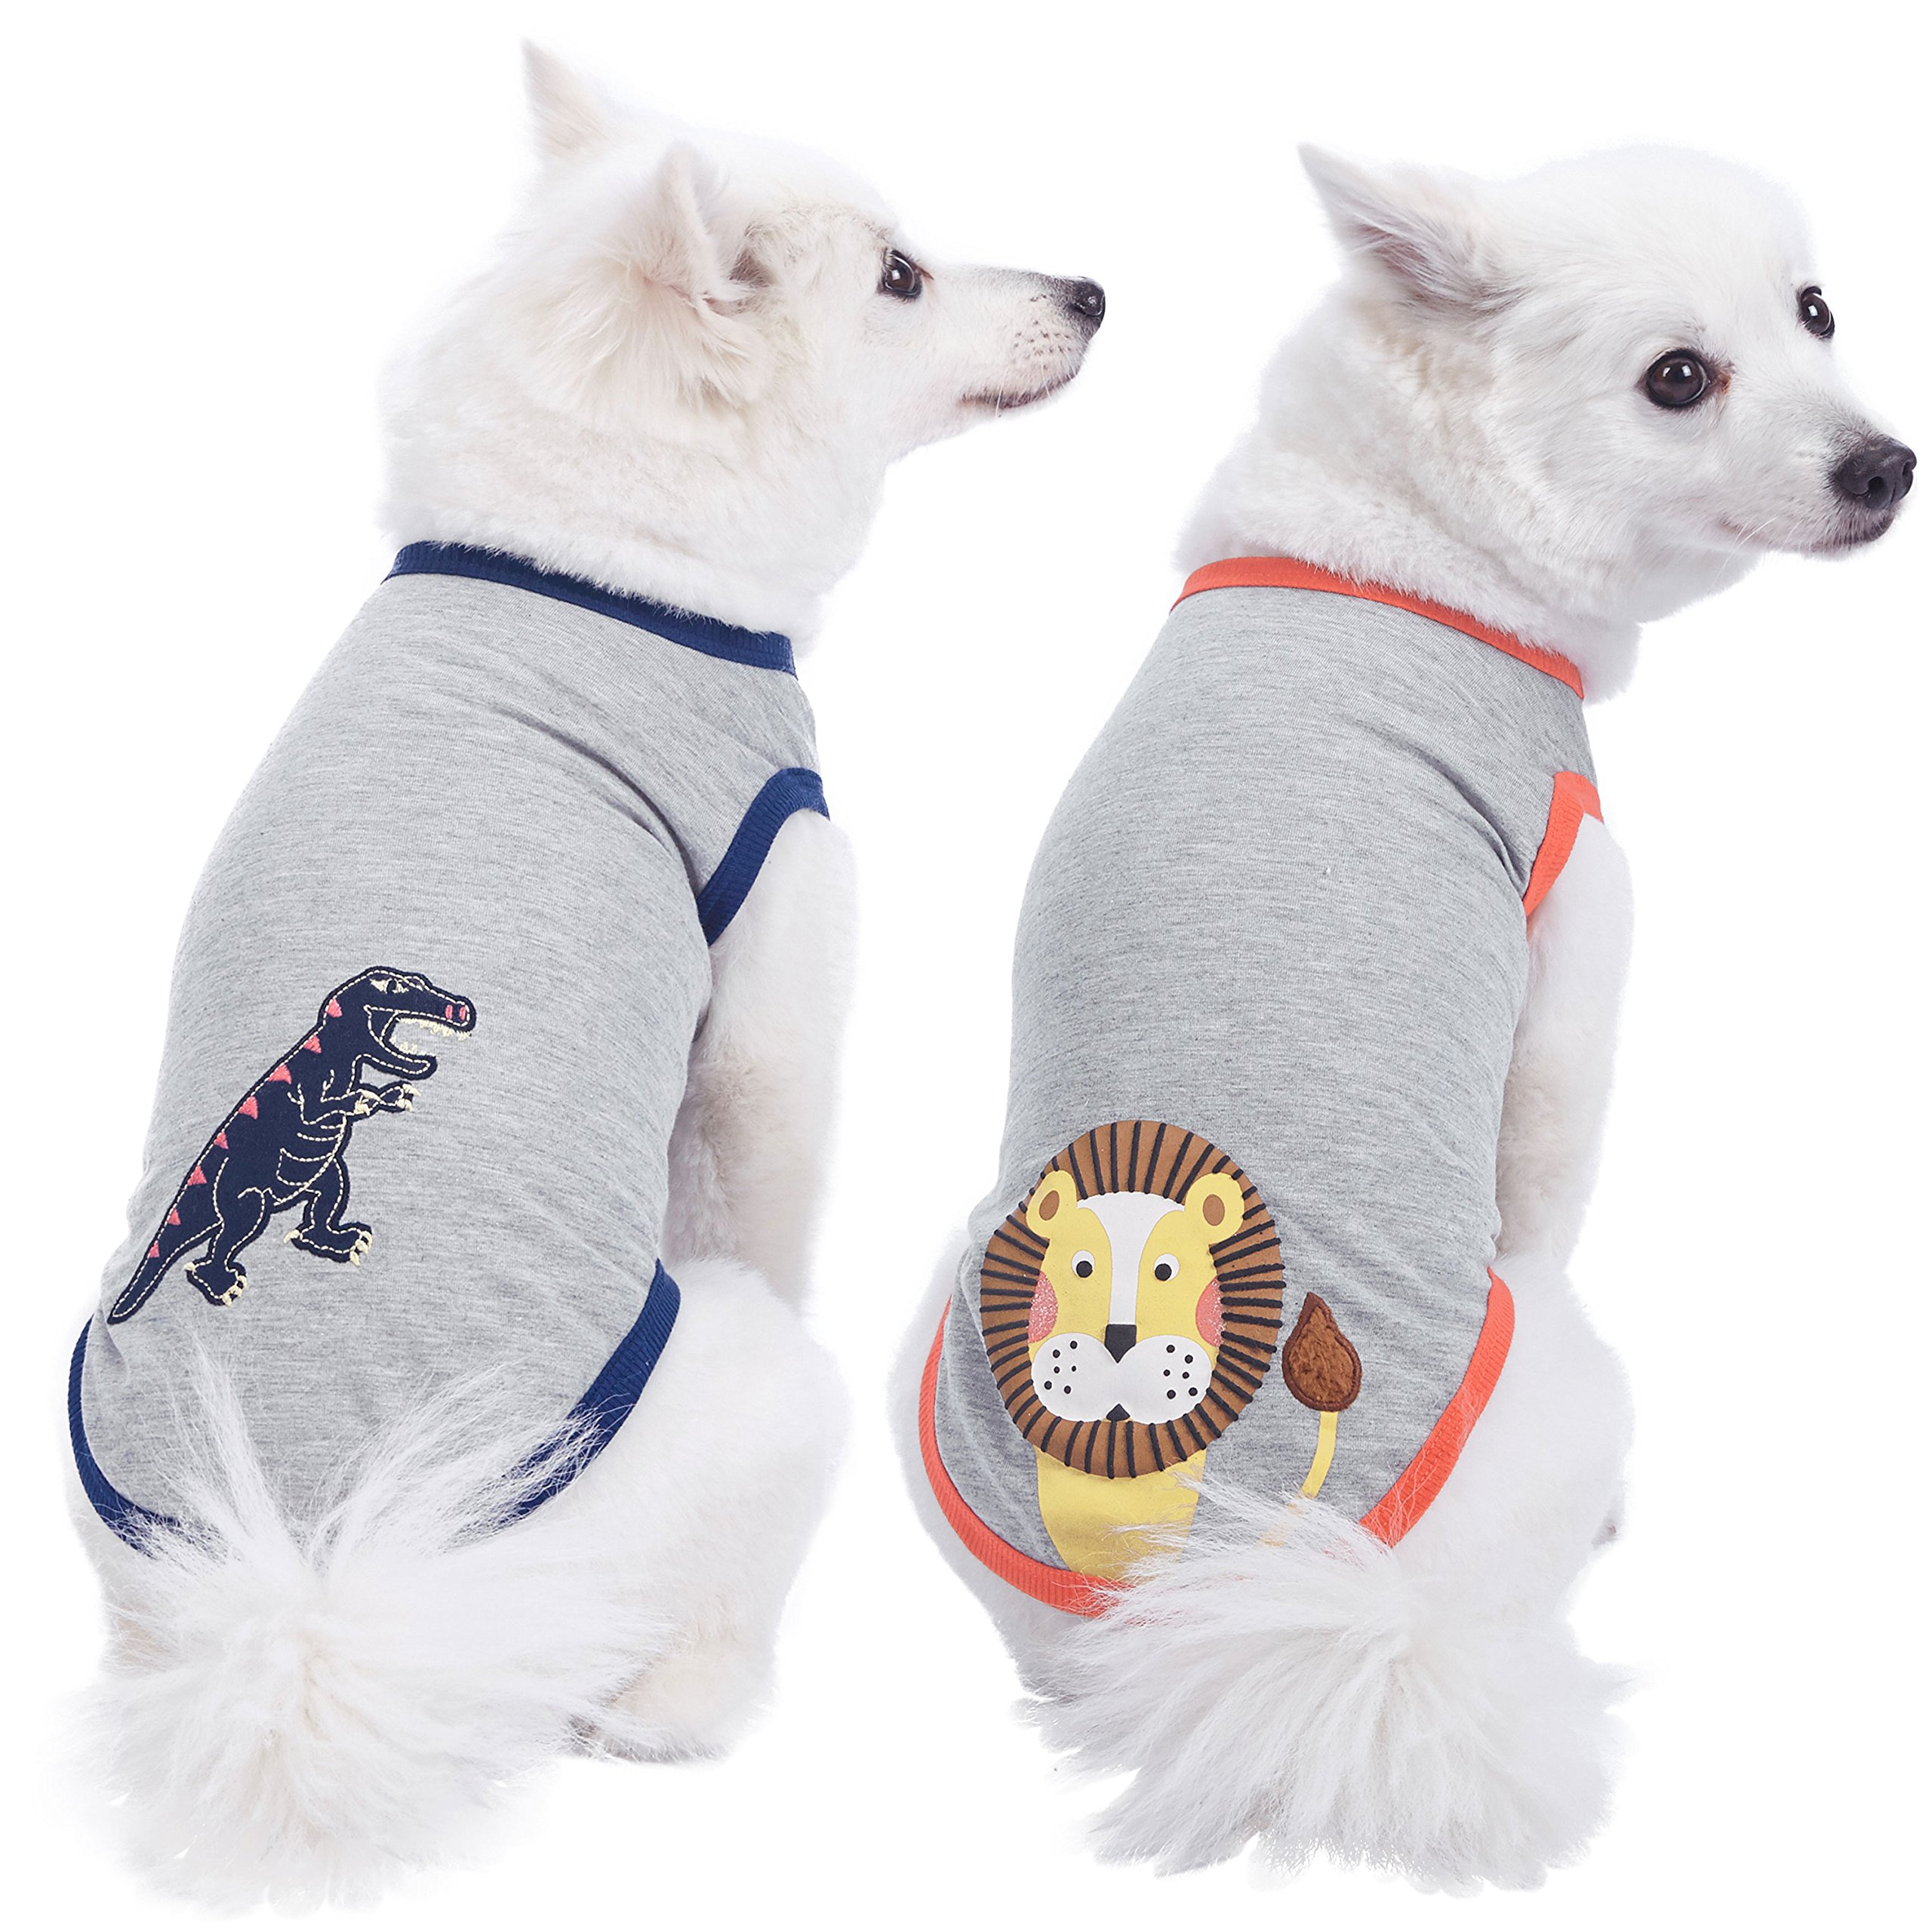 Blueberry Pet Pack of 2 Soft & Comfy Zoo Fun Cotton Blend Dog T Shirts, Back Length 12'', Clothes for Dogs